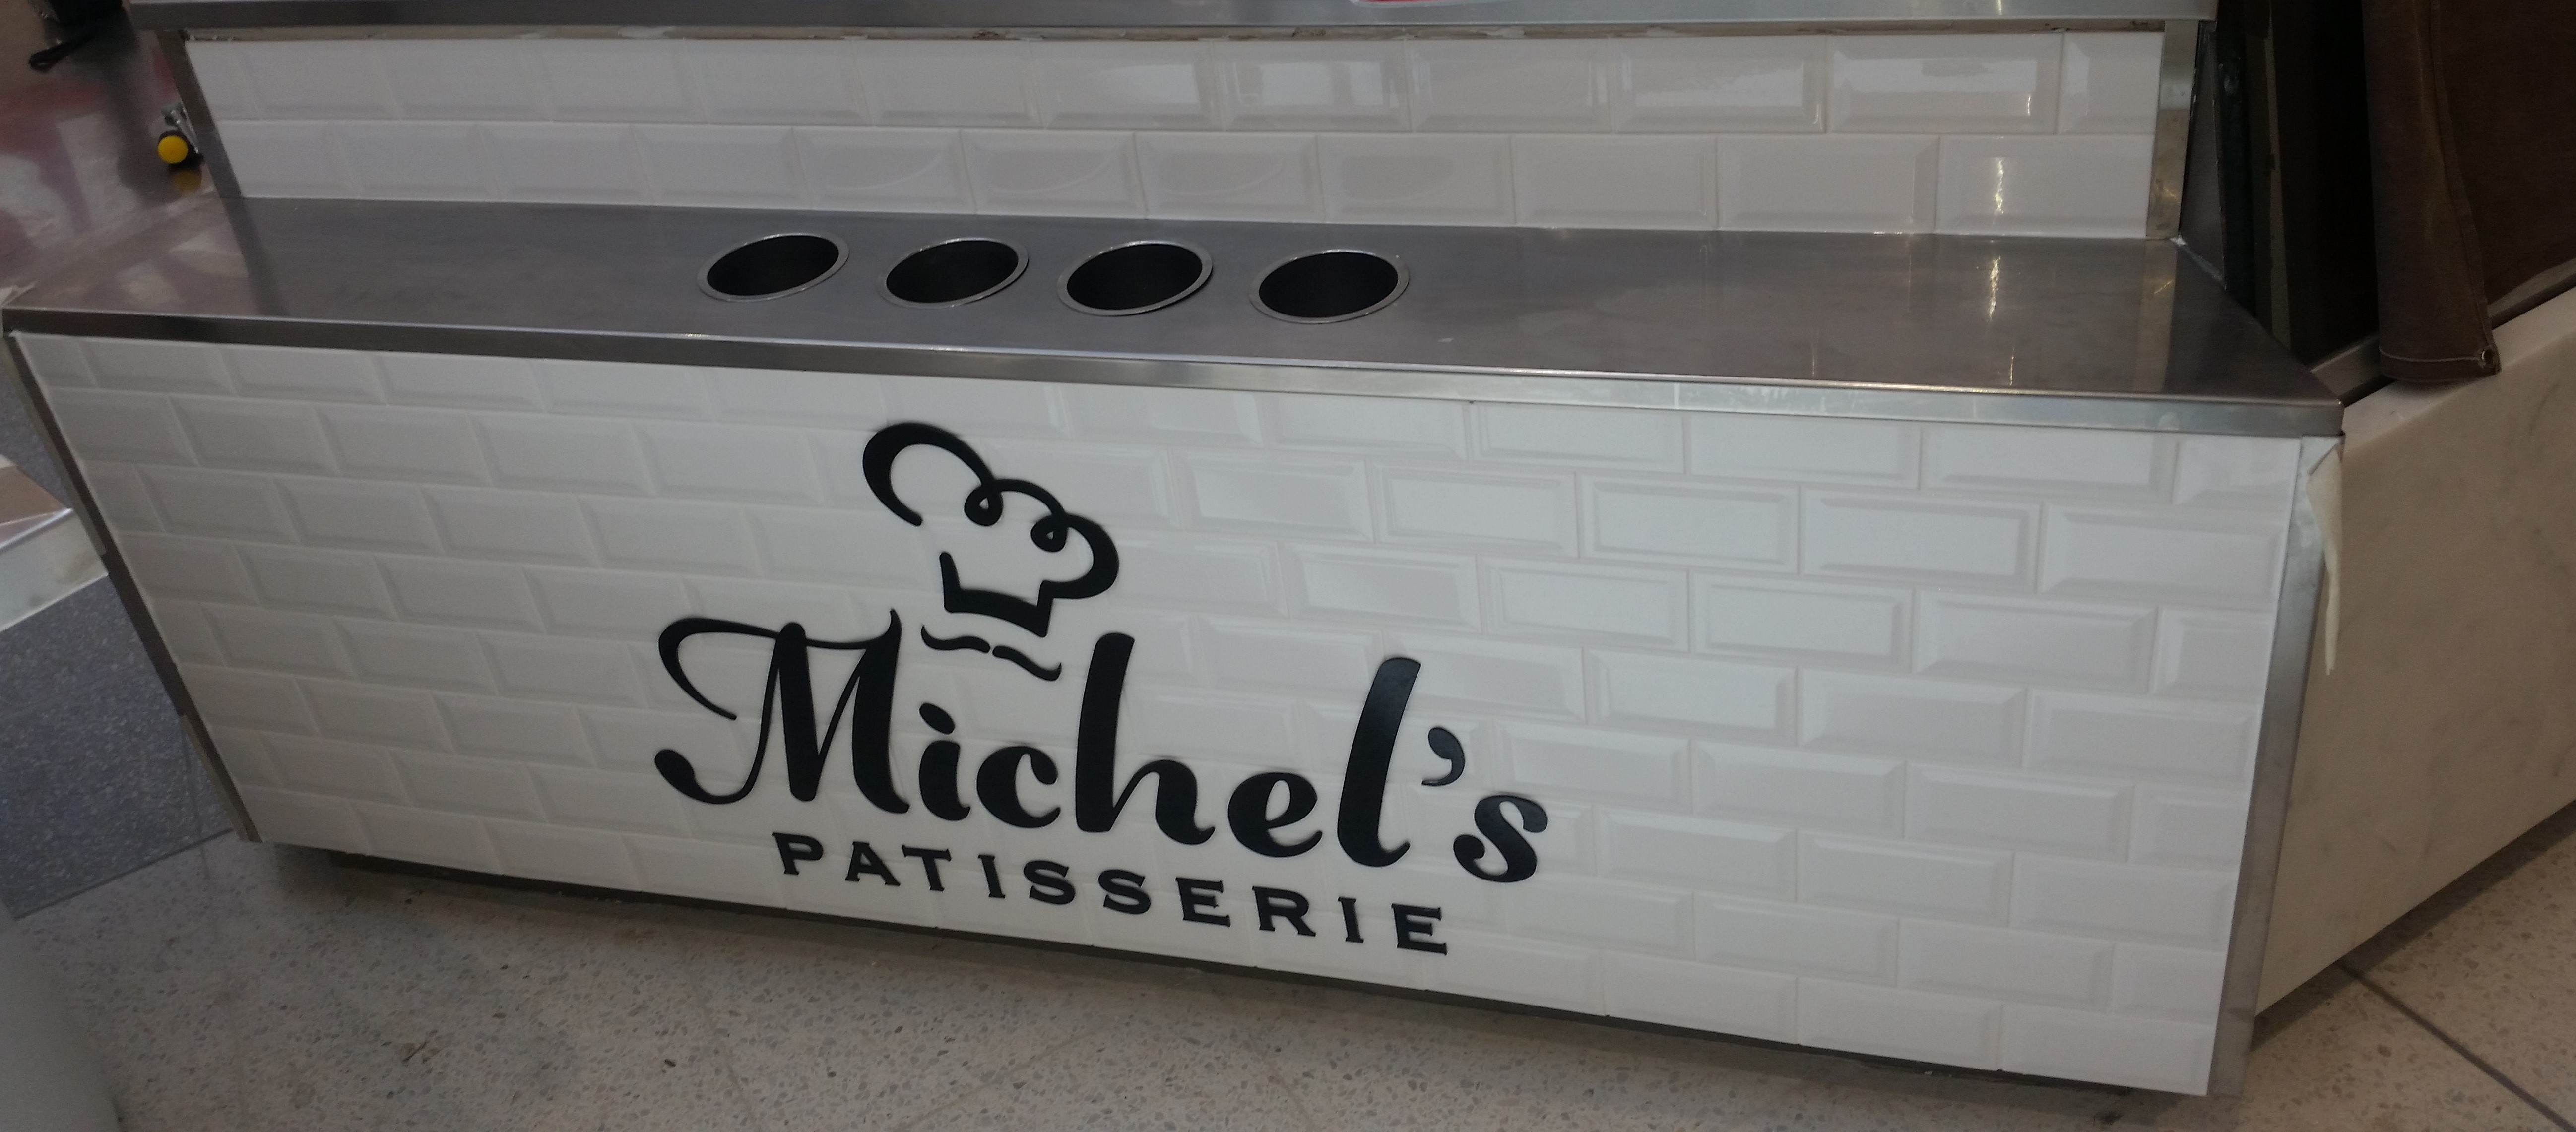 Michels Patisserie kellyville Dec 2015 (4)